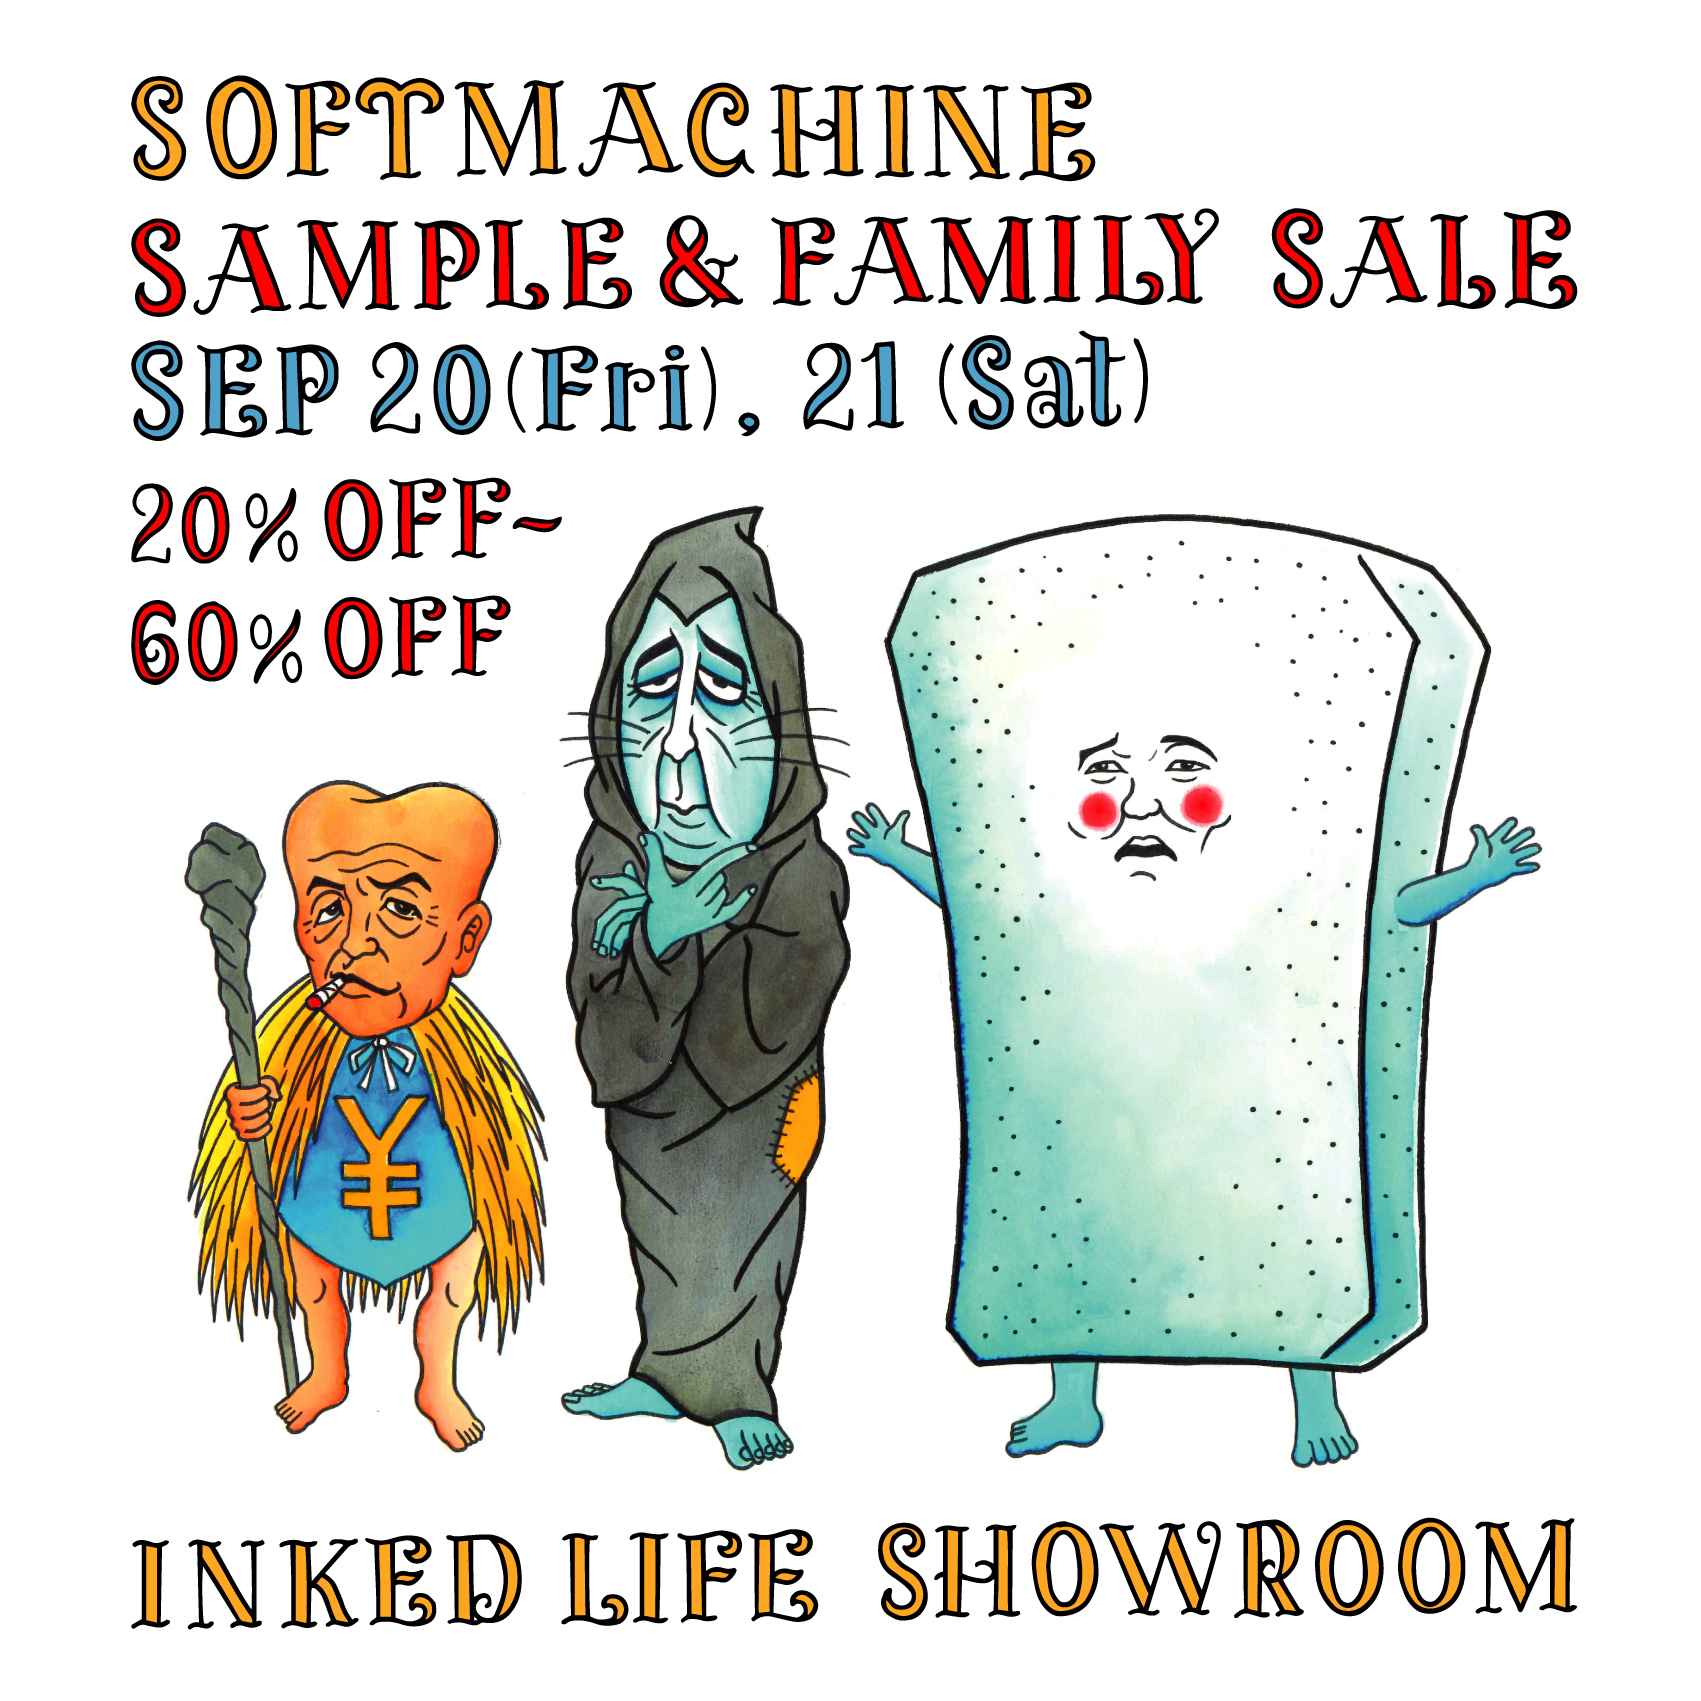 SOFTMACHINE SAMPLE & FAMILY SALE